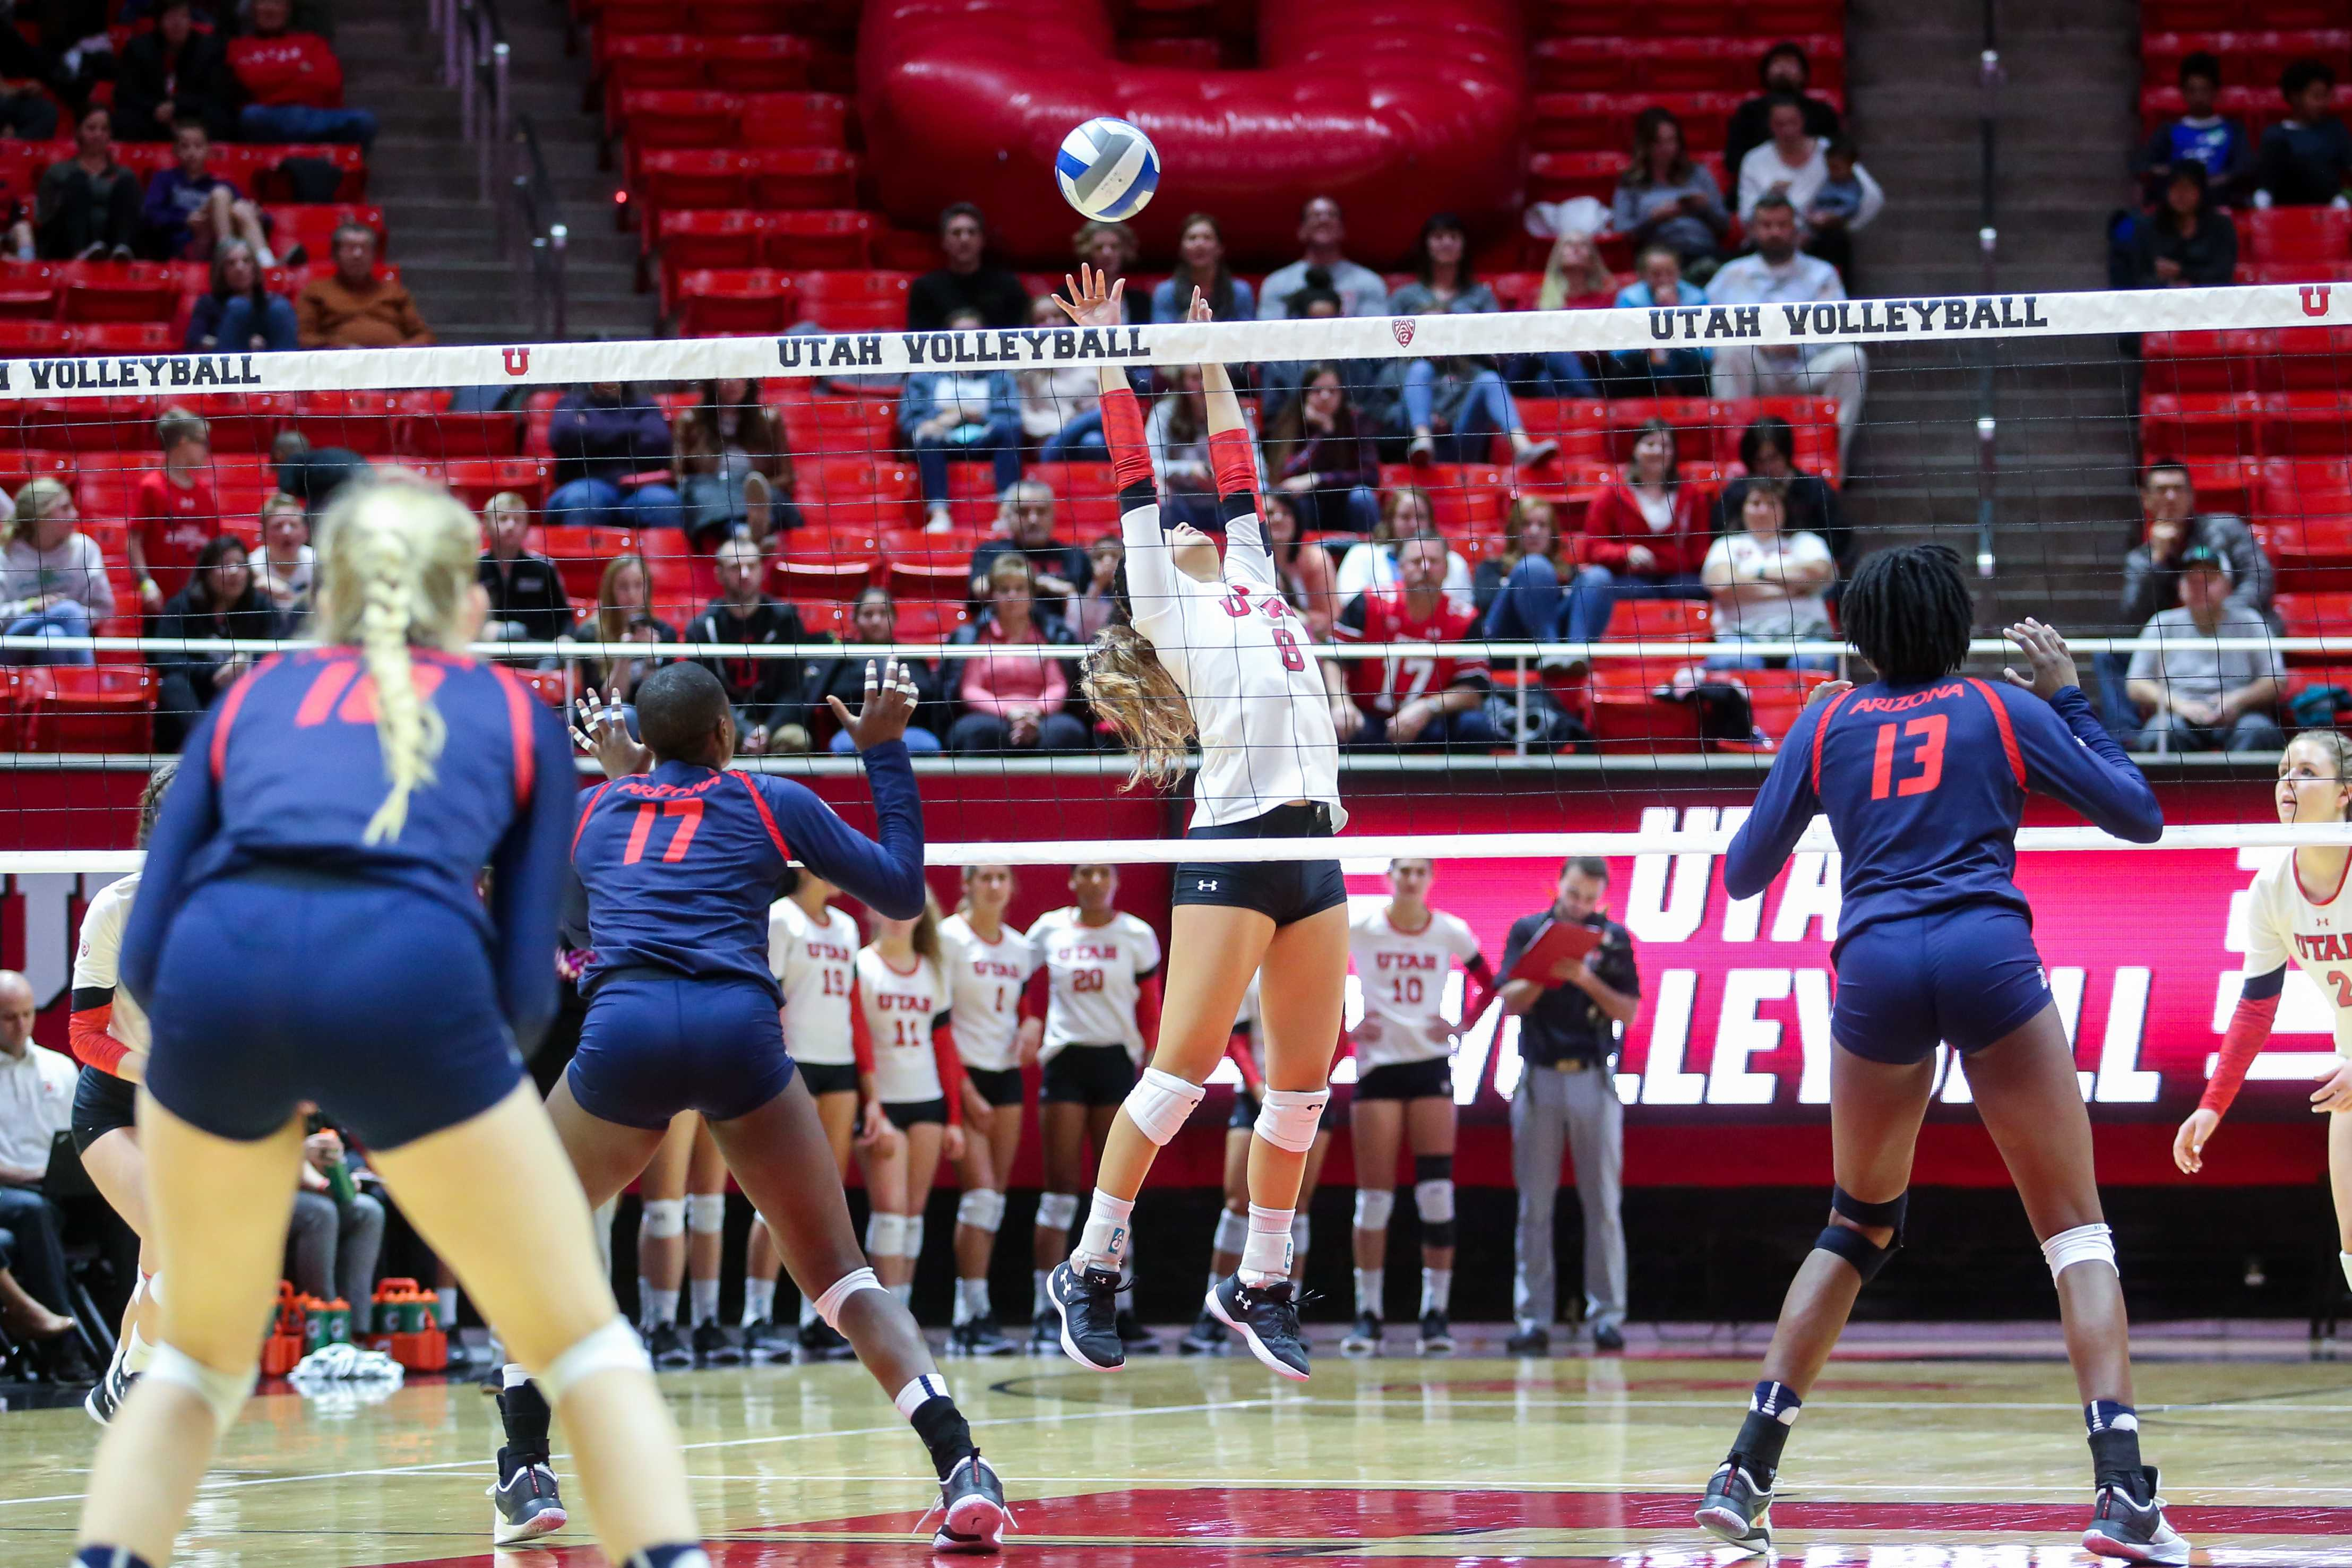 University of Utah sophomore setter Bailey Choy set the ball in an NCAA Volleyball game vs. The Arizona Wildcats in Jon M. Huntsman Center in Salt Lake City, UT on Saturday, Nov. 18, 2017.  (Photo by Curtis Lin/ Daily Utah Chronicle)